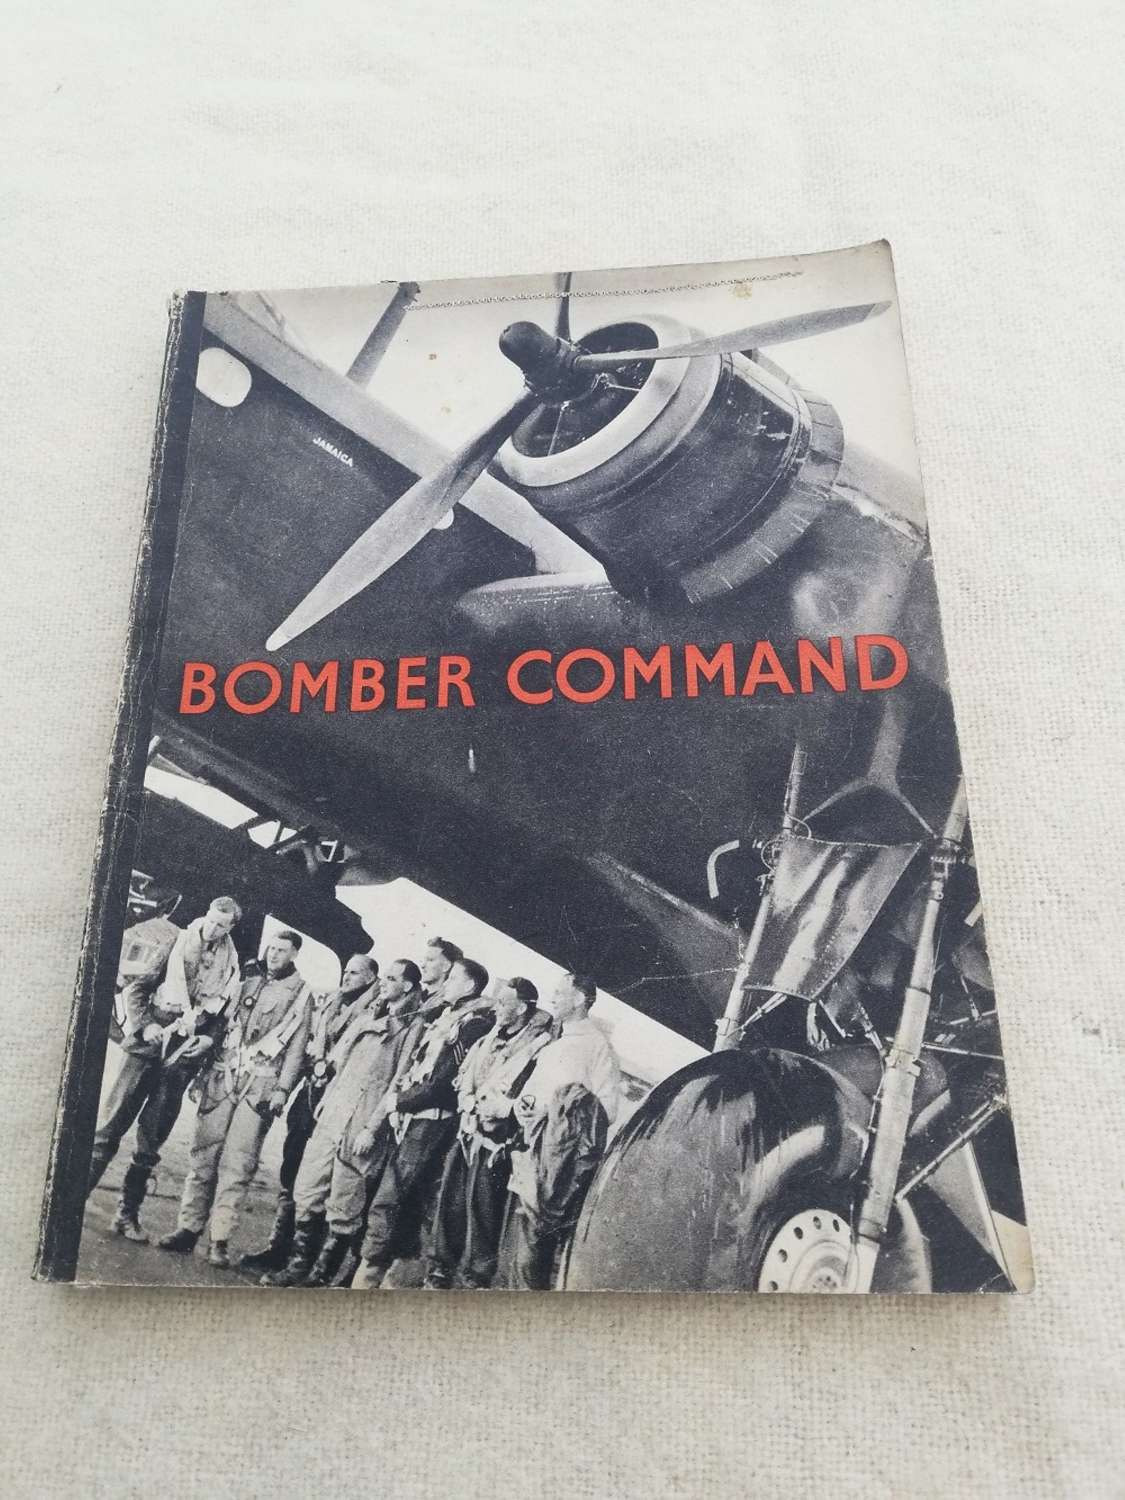 'Bomber Command' HMSO Booklet 1941